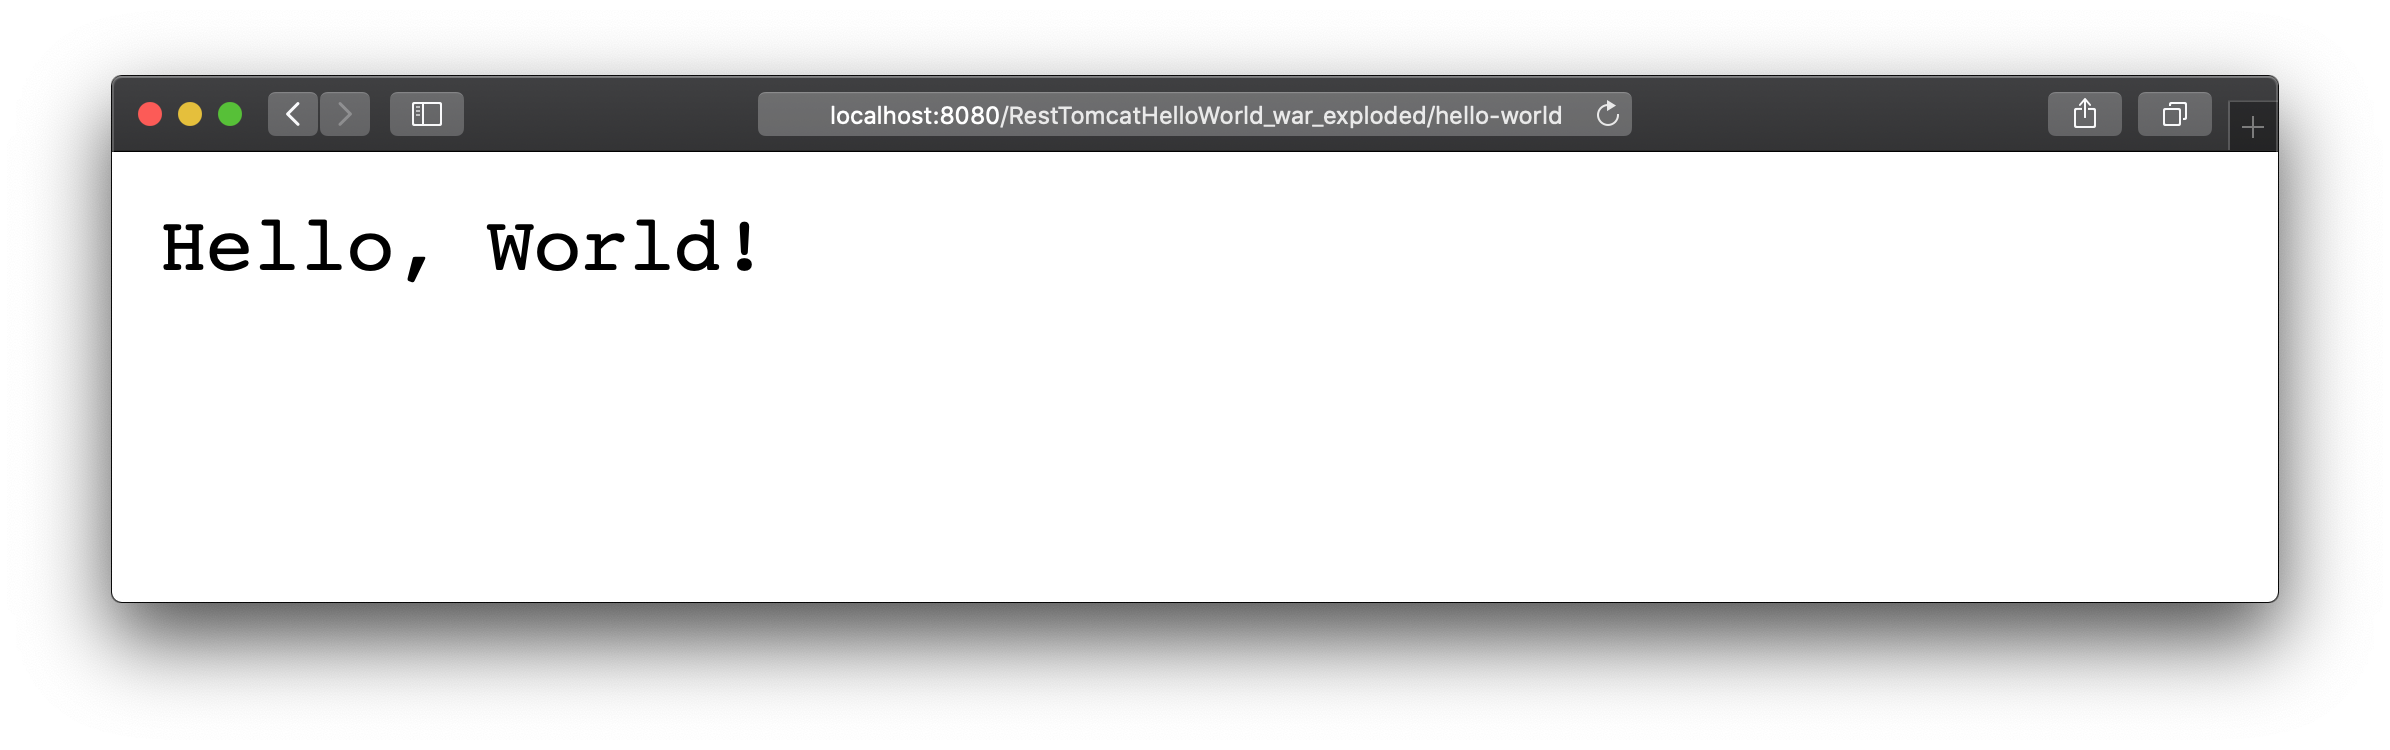 Deployed application output in the web browser